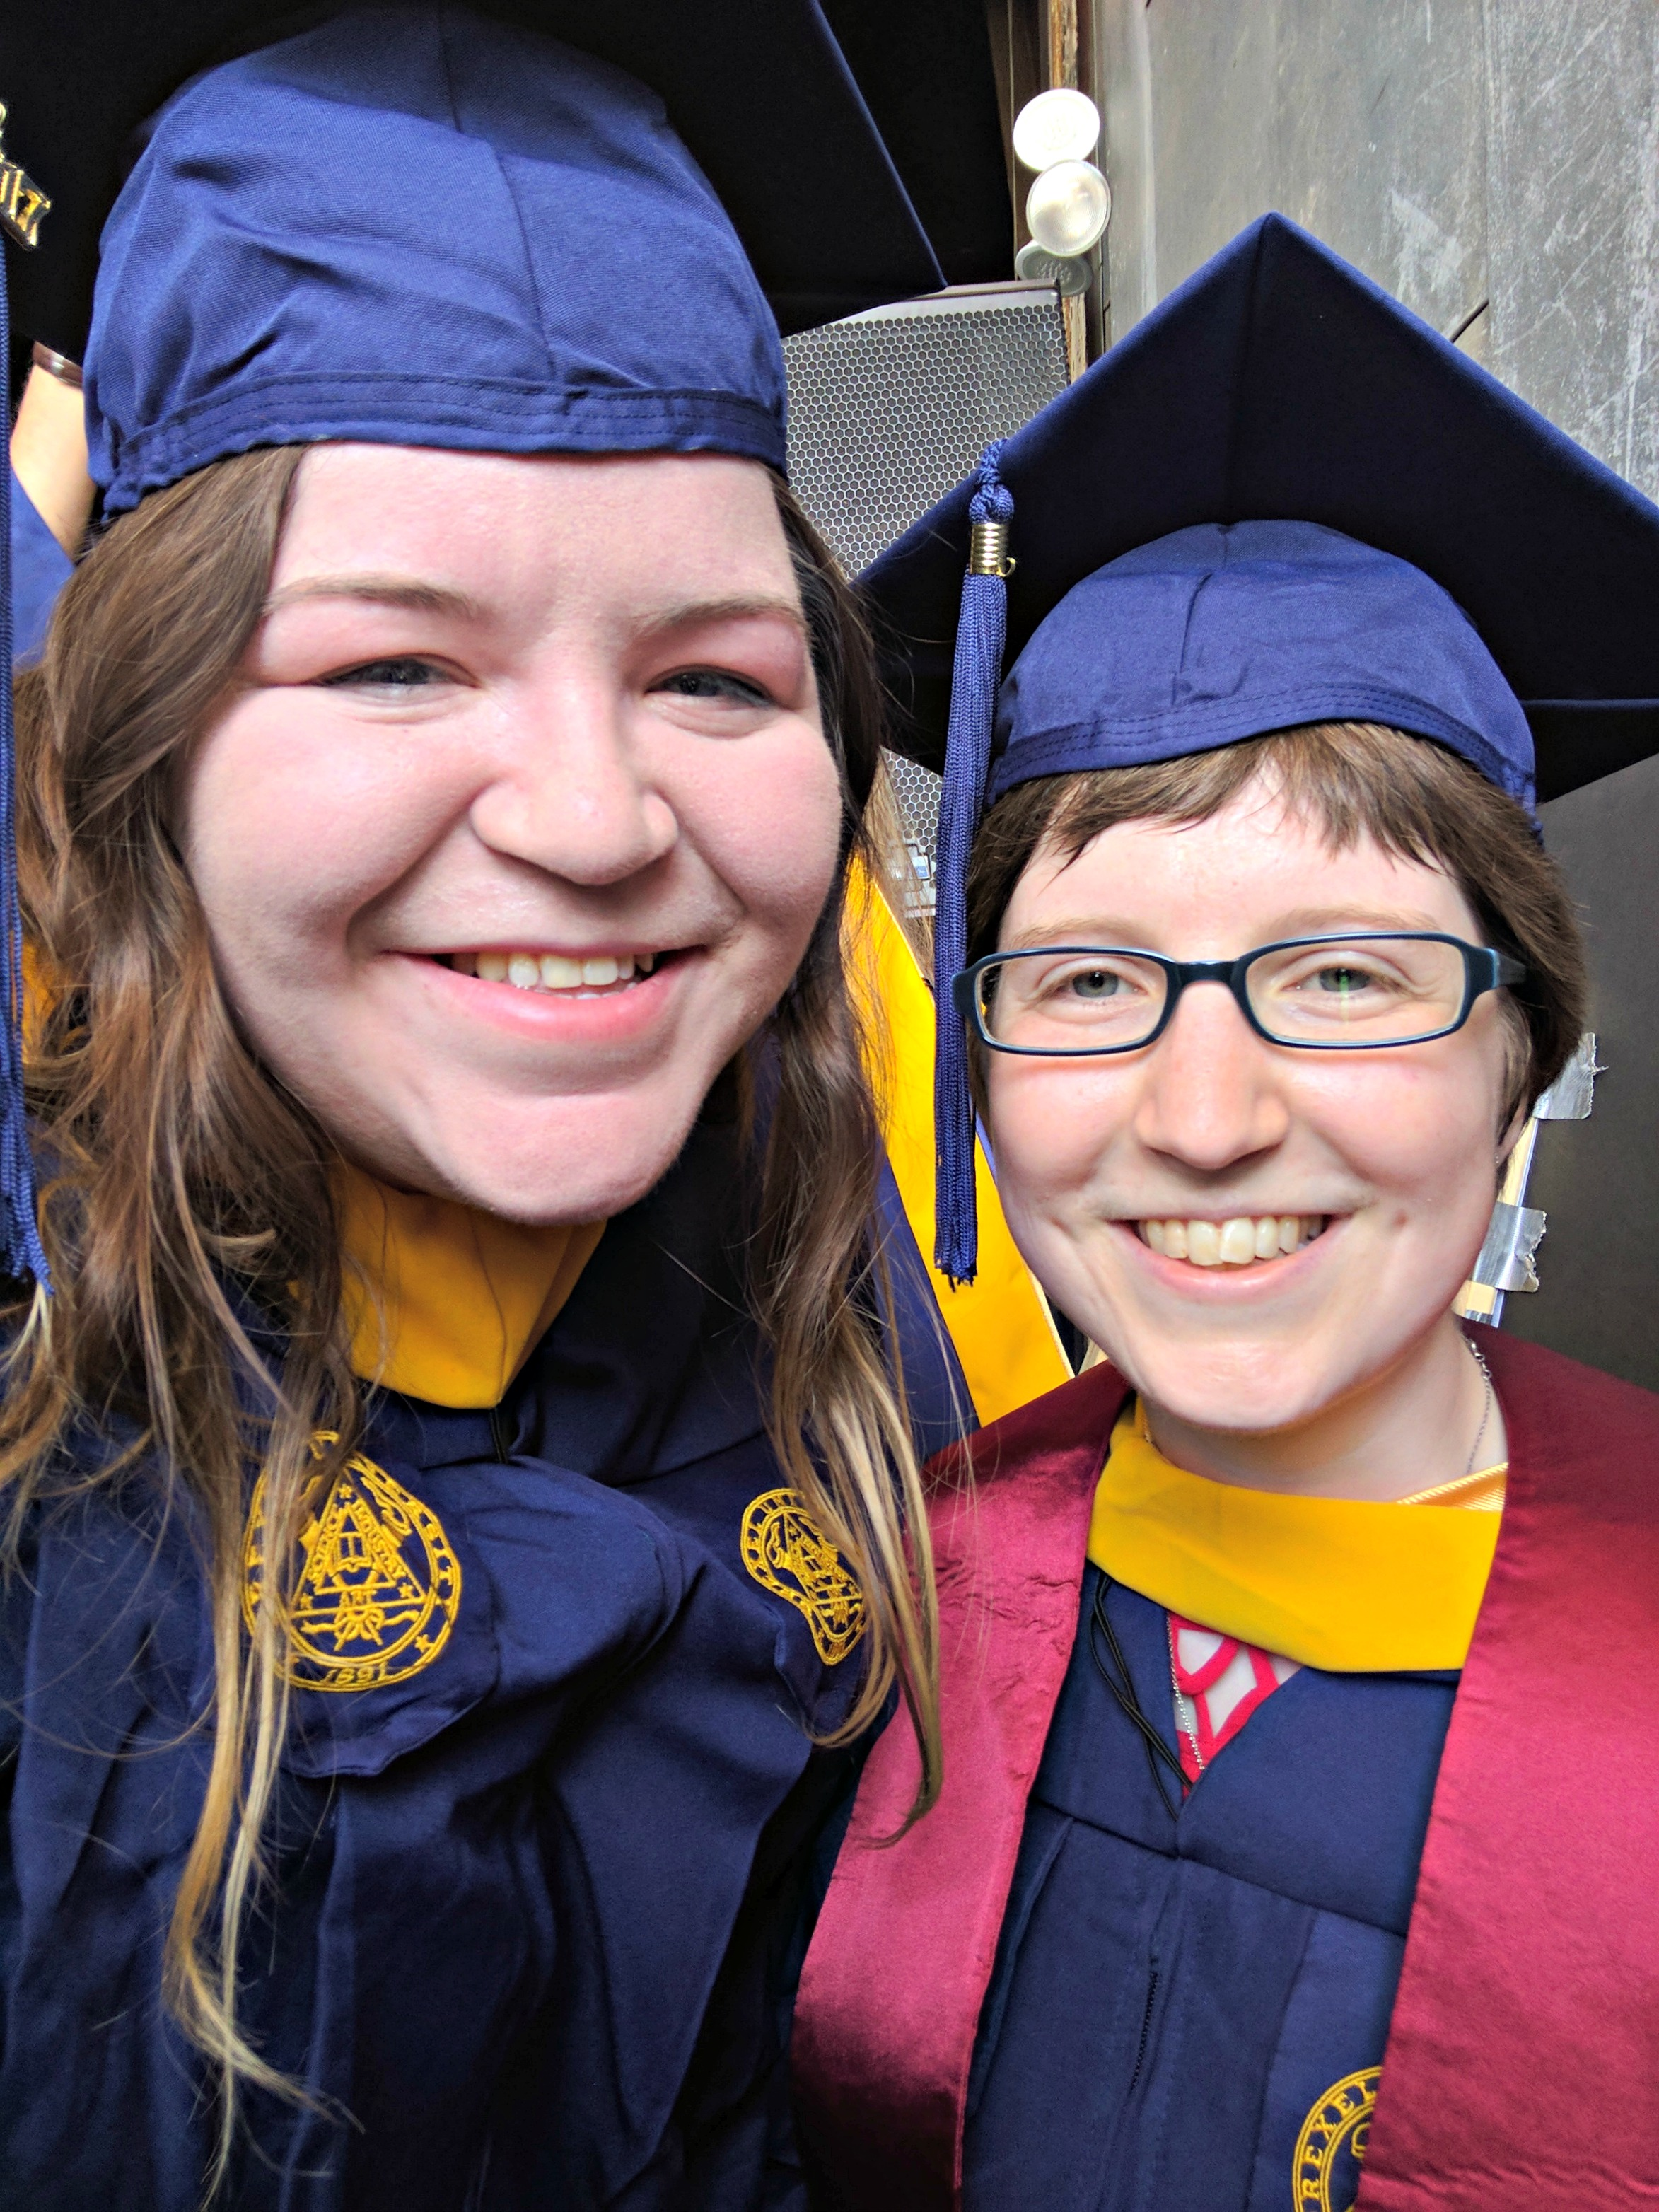 Sara Yacoubian, left, and Karen Shollenberger, right, at graduation this year. Photo courtesy Sara Yacoubian.